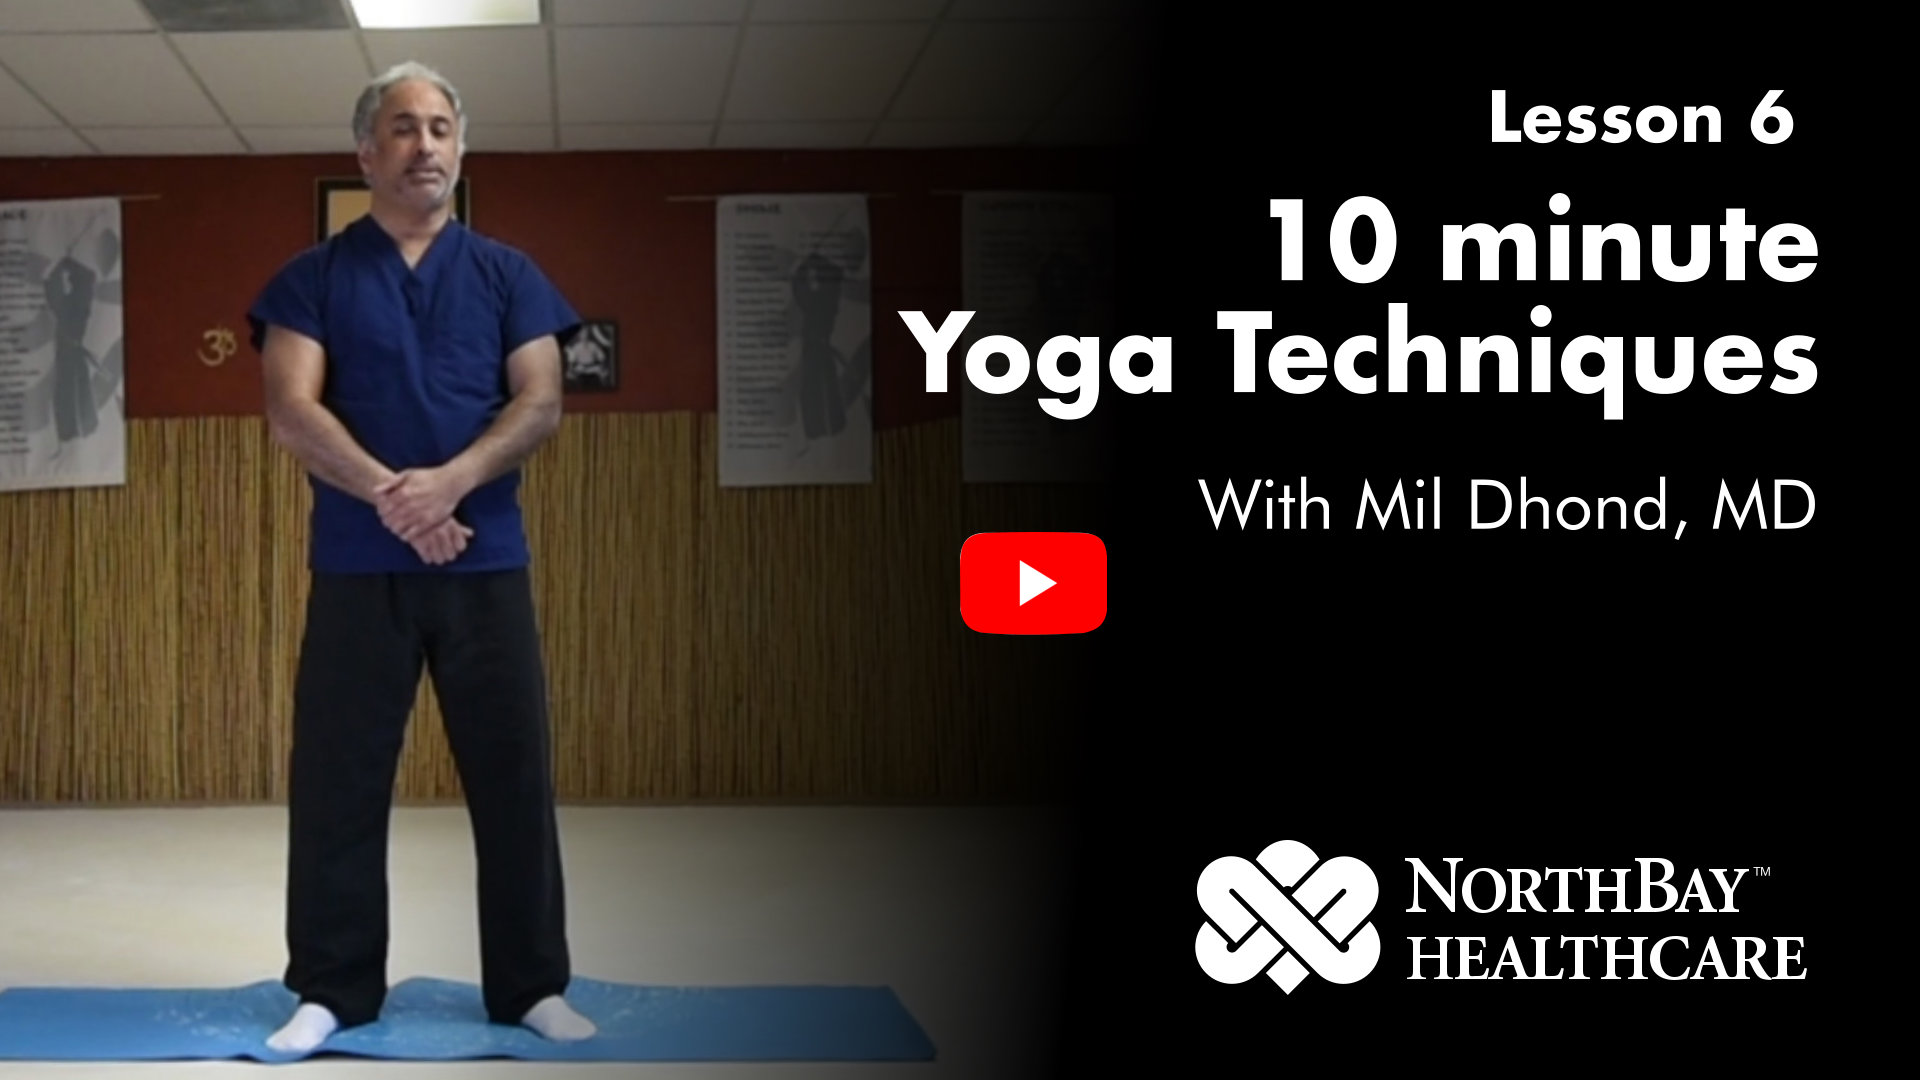 Lesson 6: Dr. Dhond Demonstrates some 10 minute Yoga Stretches